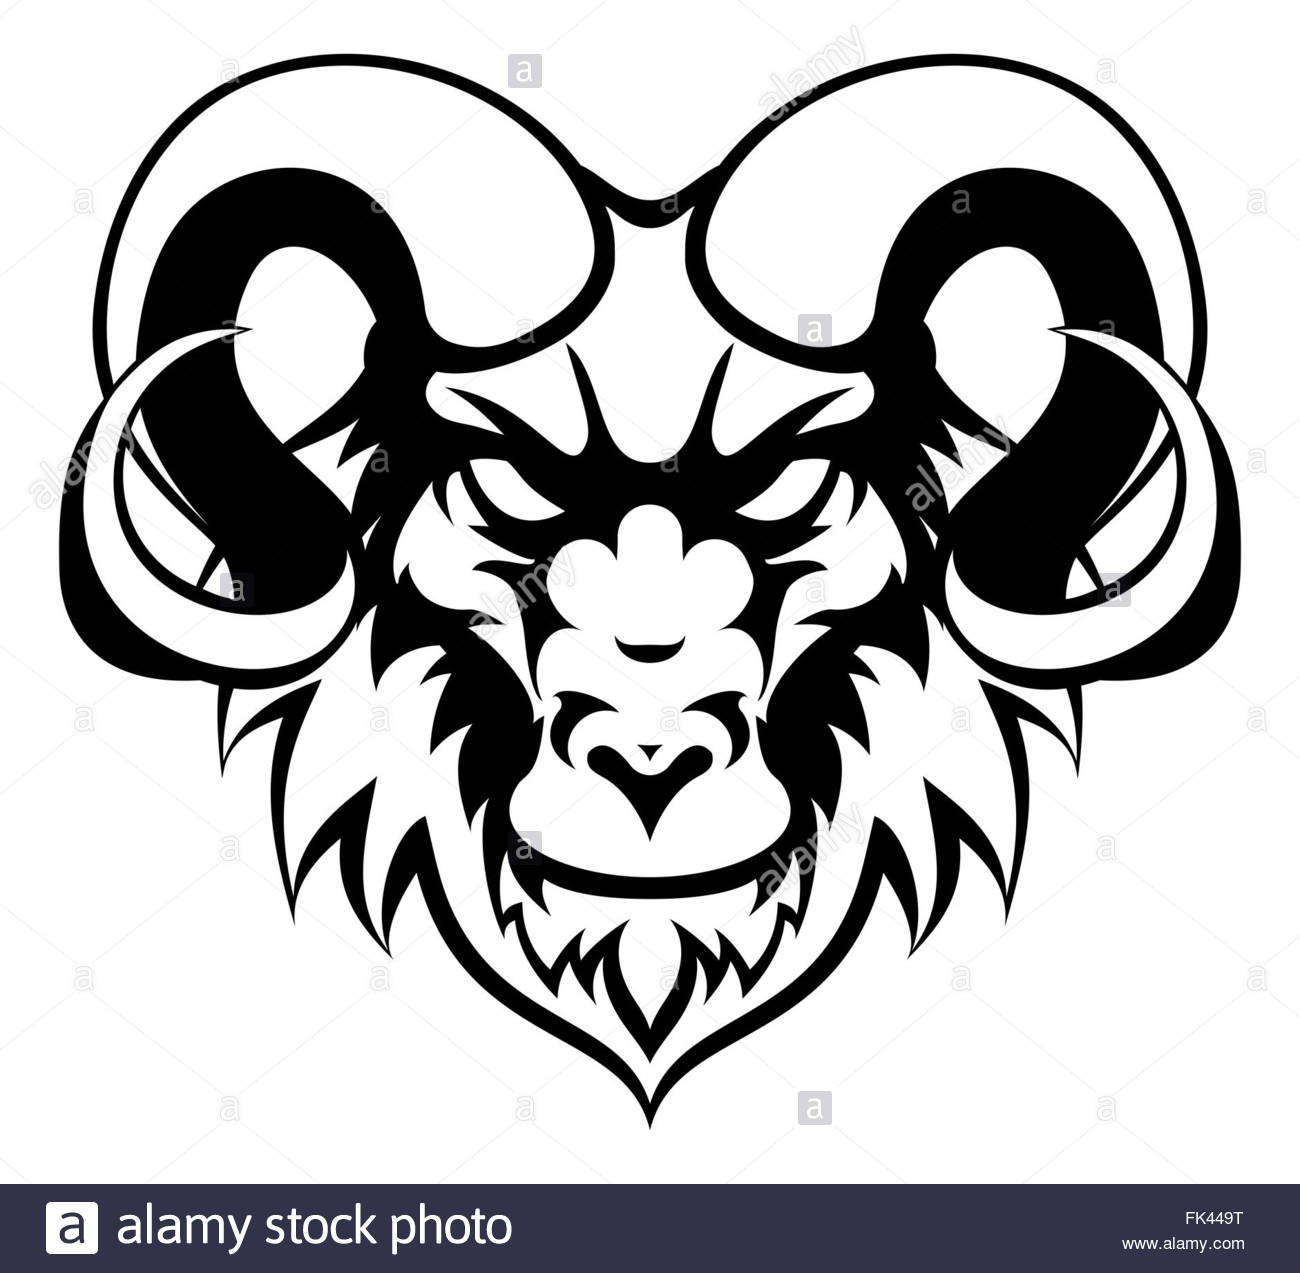 1300x1273 An Illustration Of A Ram Animal Mean Sports Mascot Head Stock